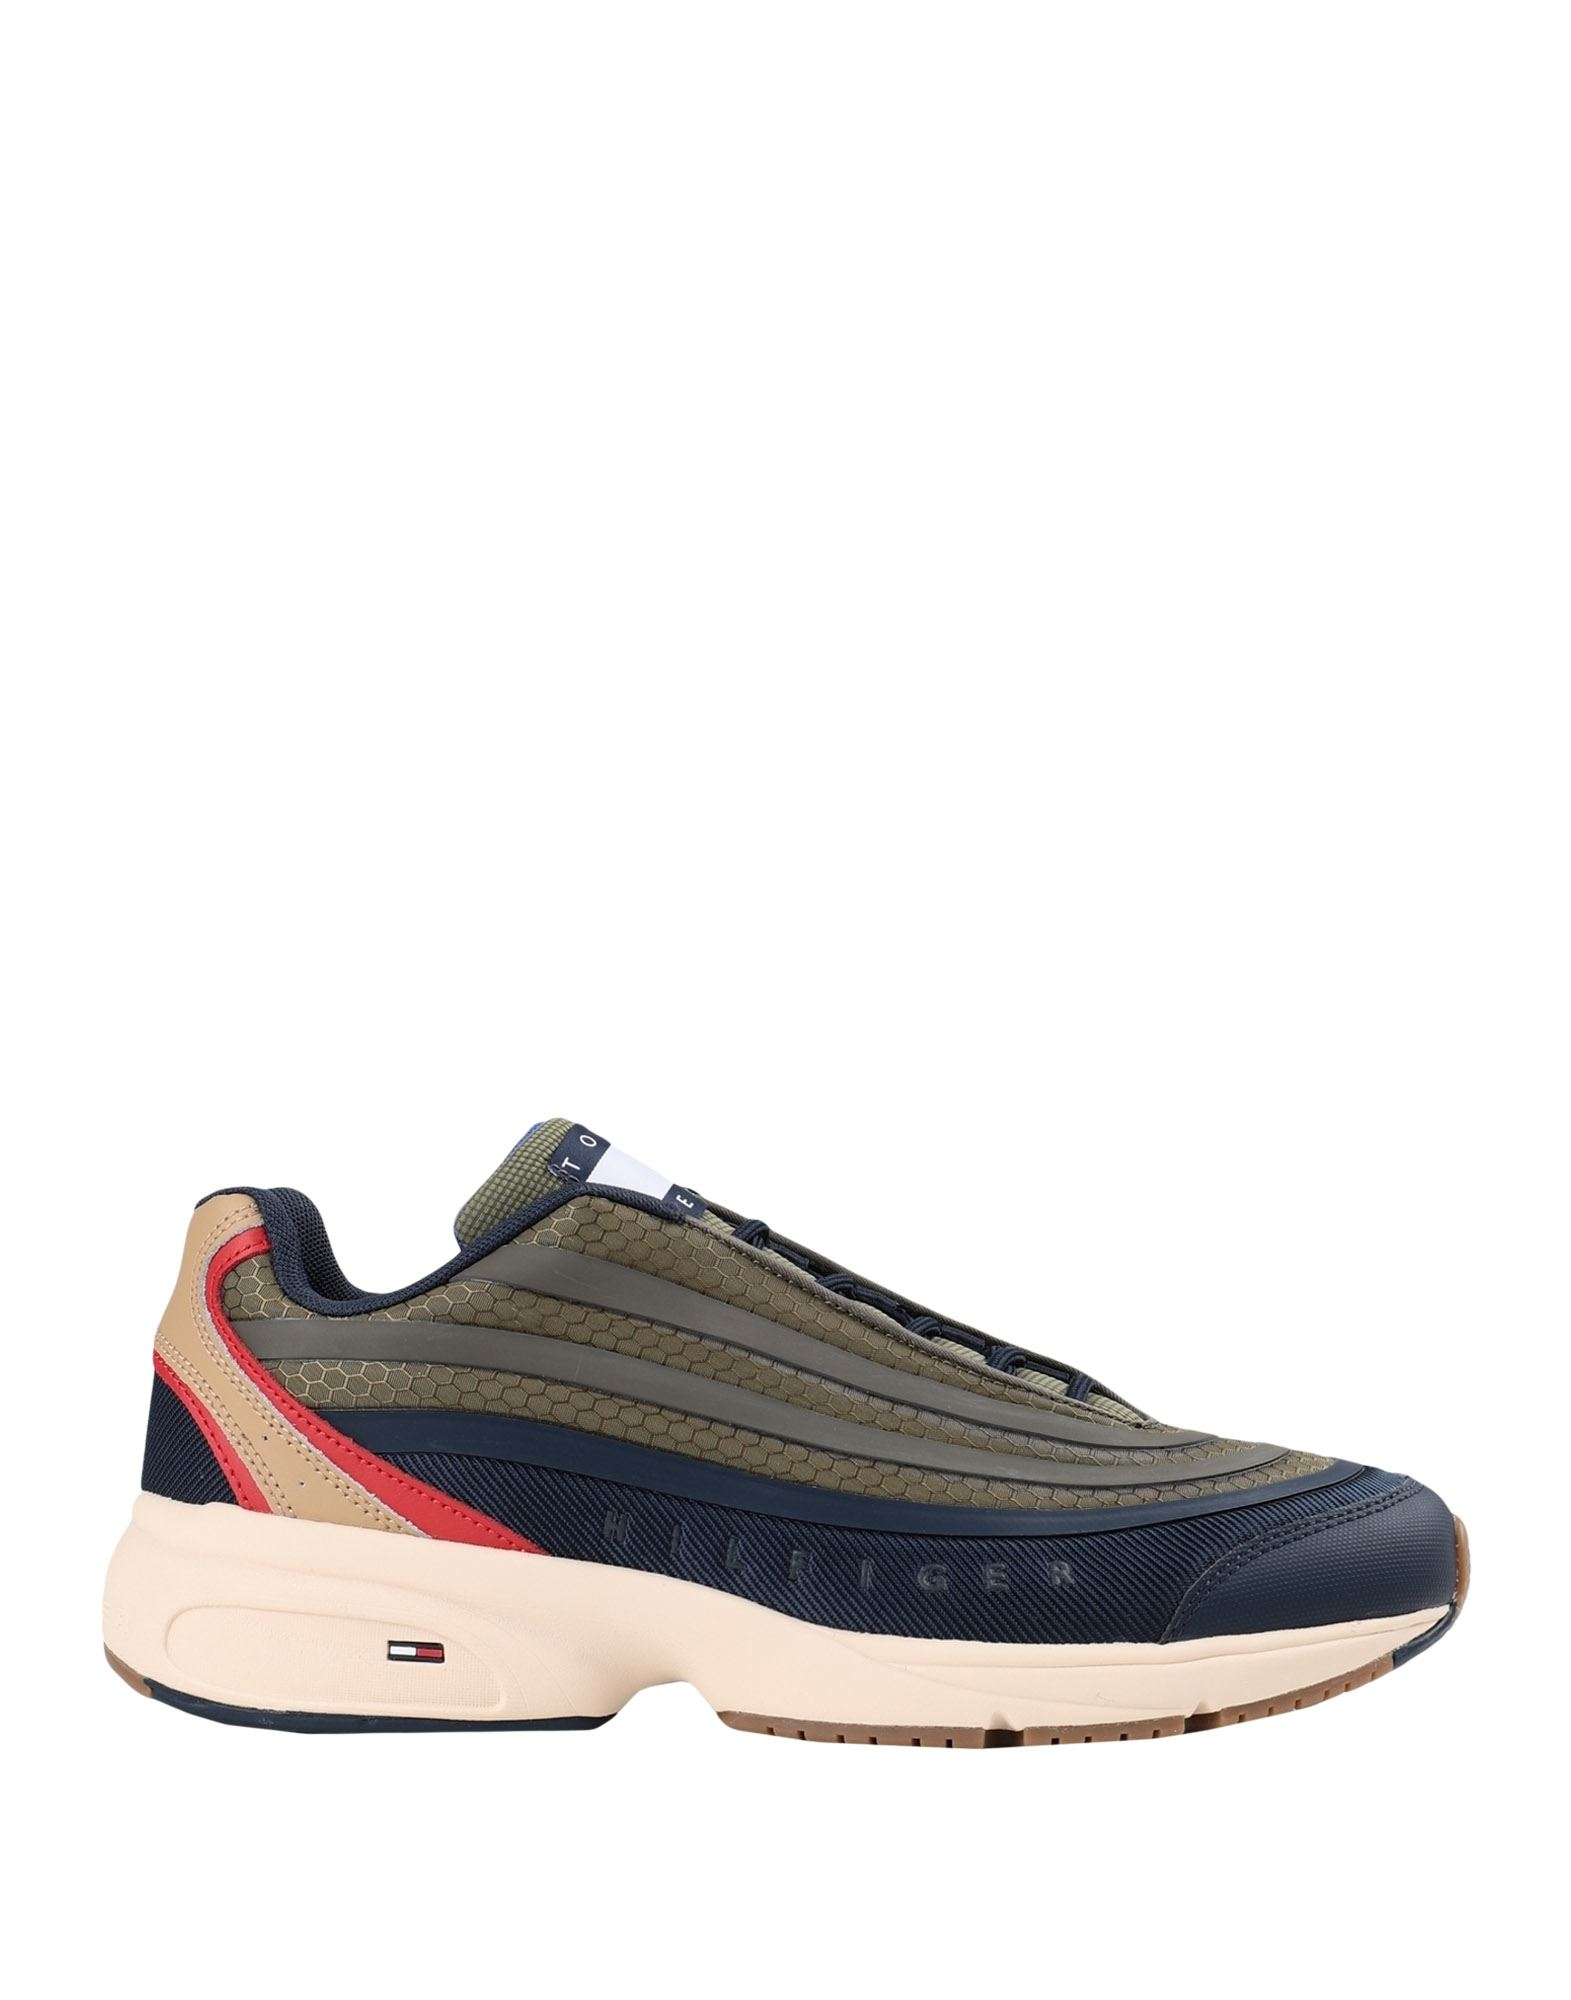 TOMMY JEANS メンズ スニーカー HERITAGE MODERN MIX SNEAKERS ミリタリーグリーン